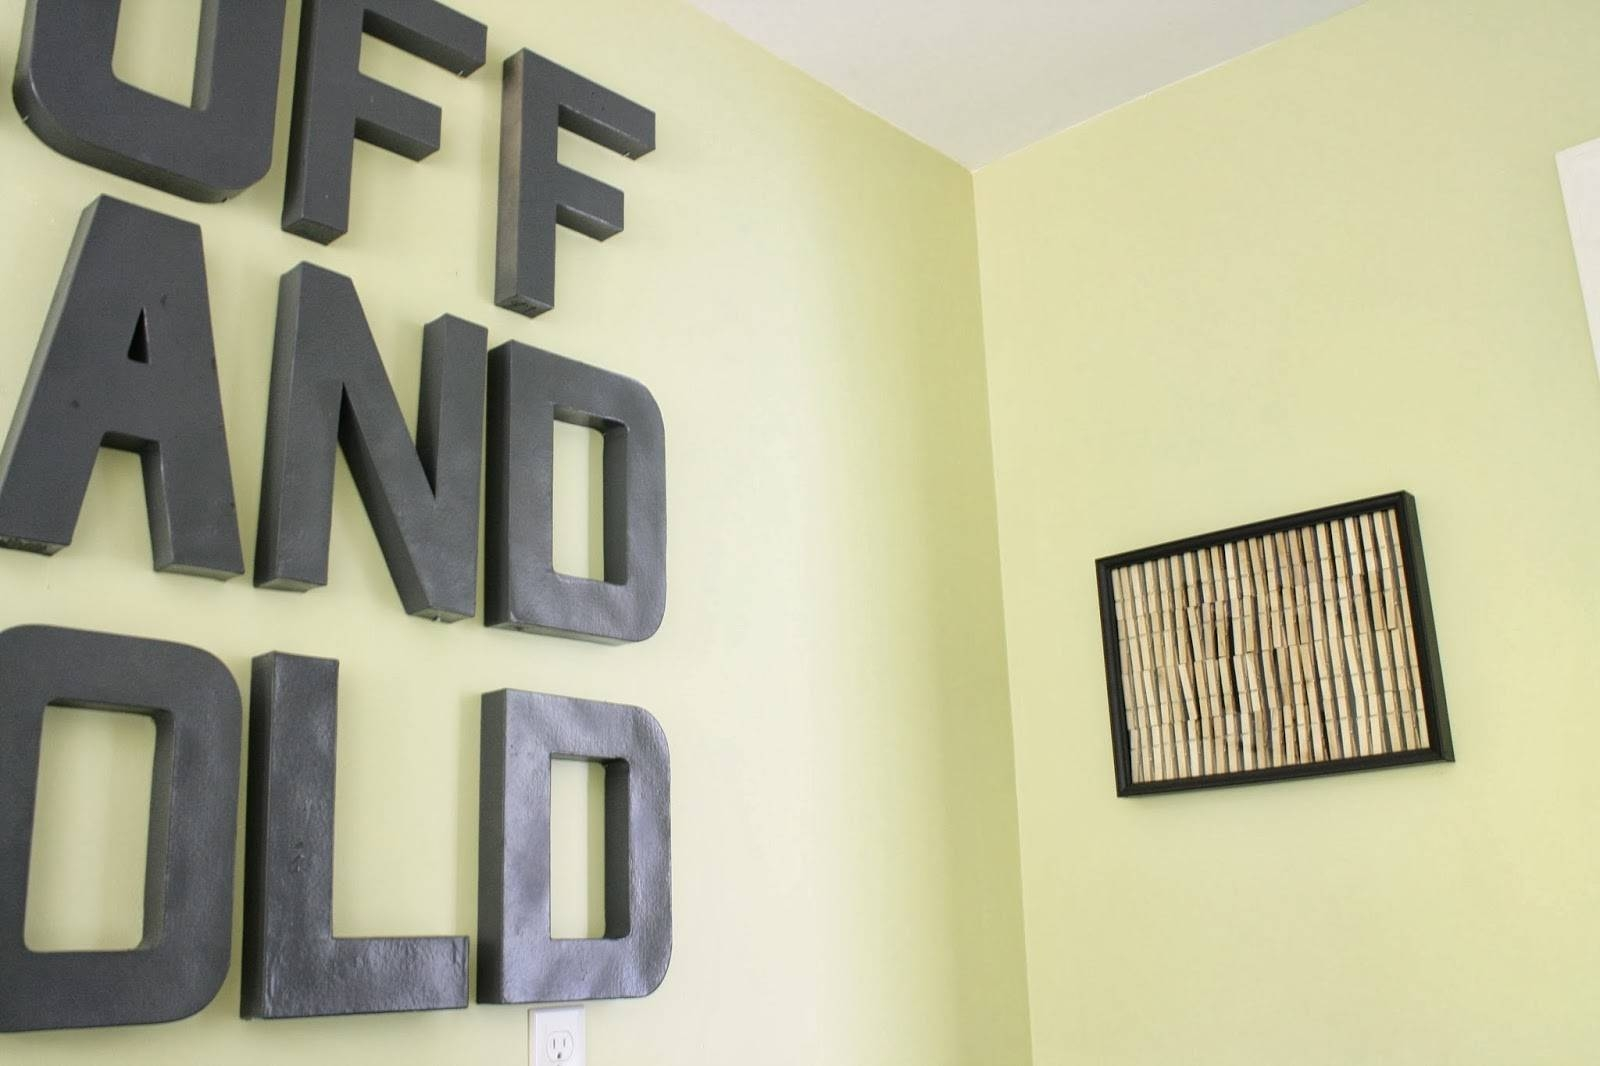 Laundry Room Wall Art Ideas: Thrifty, Easy Diy Tutorial | Designer Inside Current Laundry Room Wall Art (View 22 of 30)